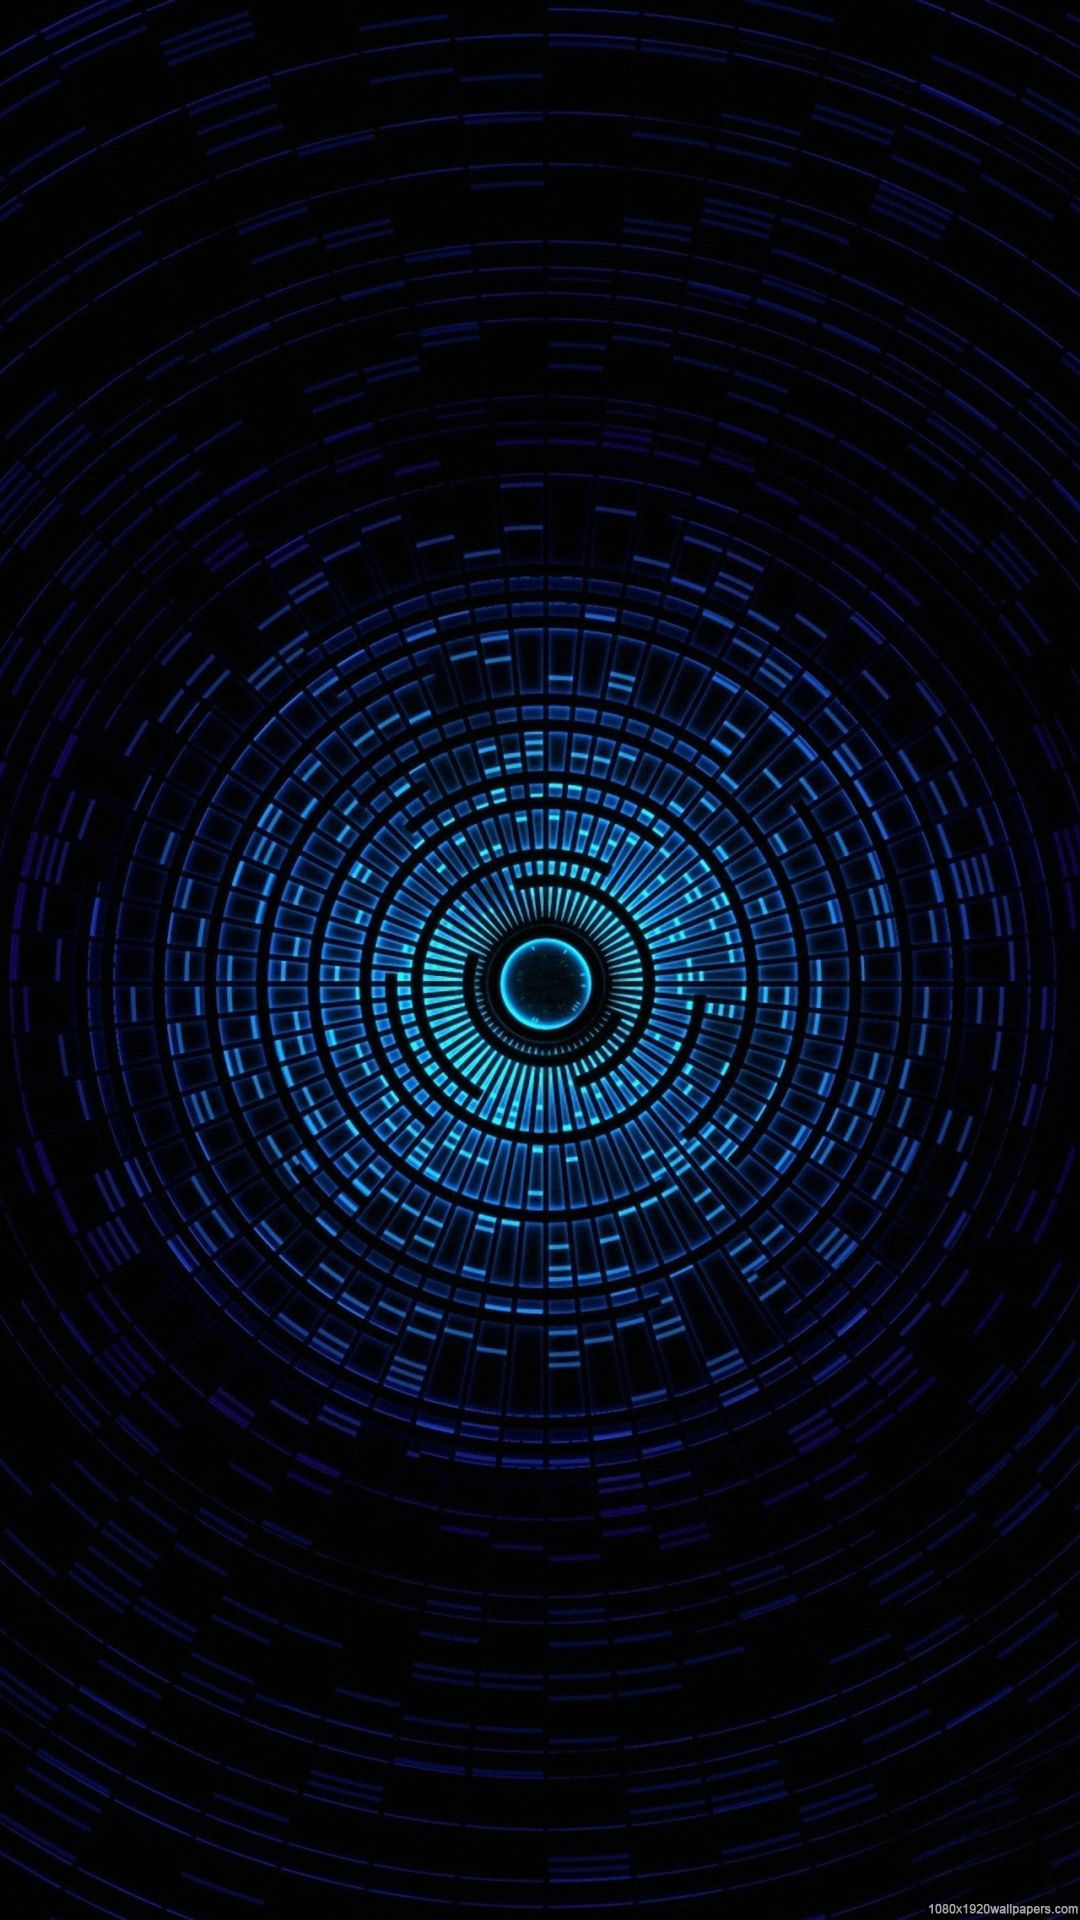 1080x1920 Abstract Wallpapers Hd 1080p Abstract Wallpapers Hd Wallpaper Android Android Phone Wallpaper Mobile Wallpaper Android